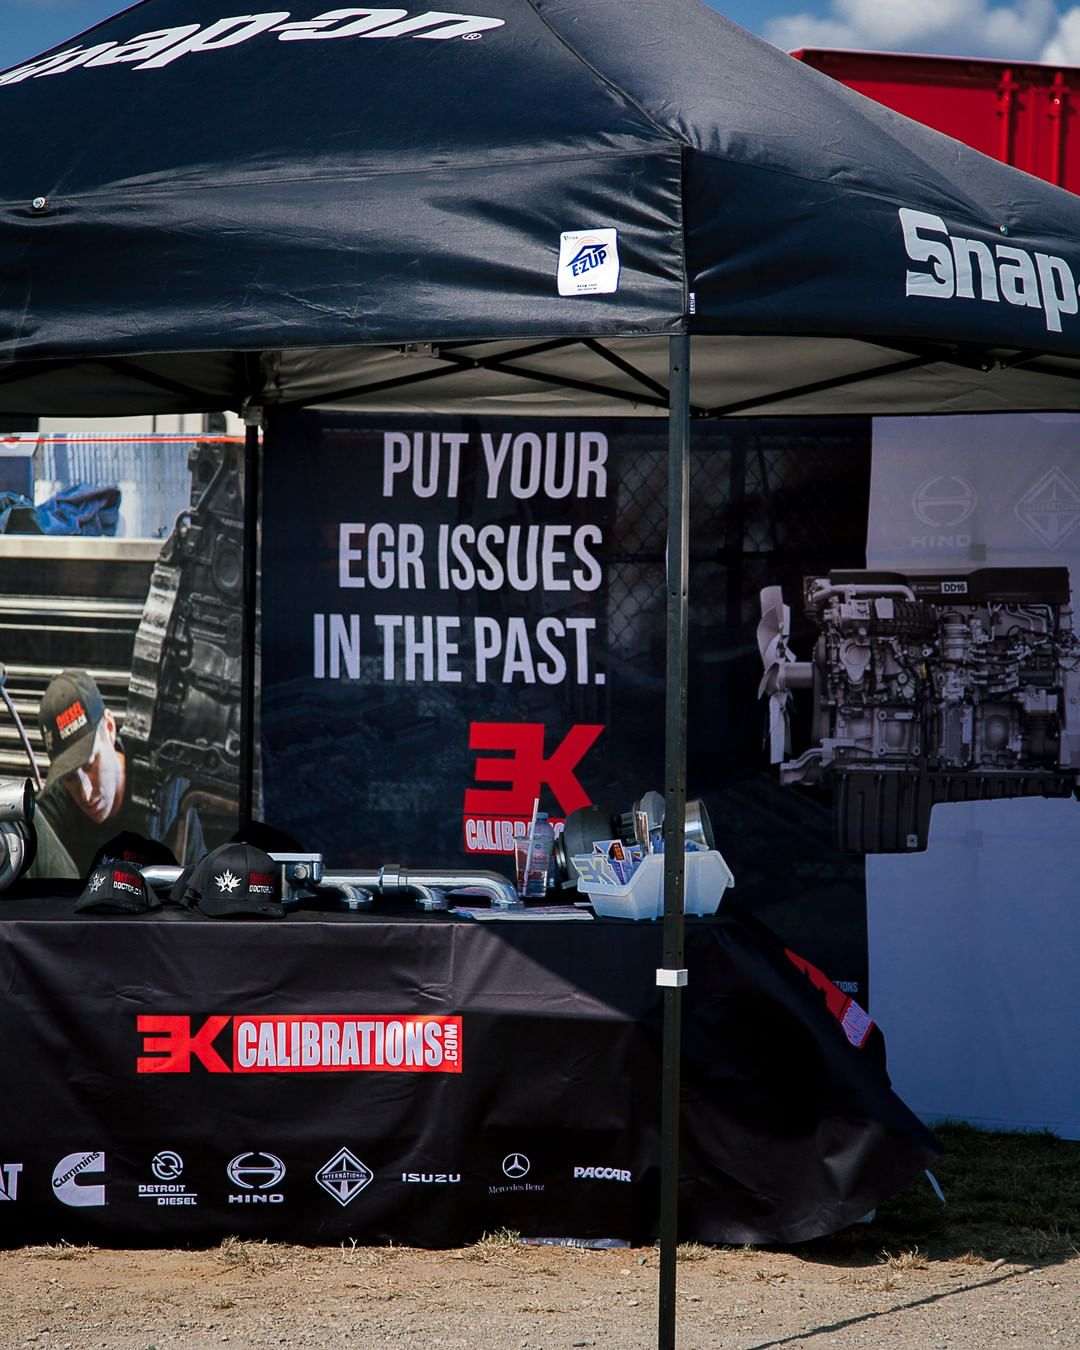 3K Calibrations tent at the Abbotsford Agrifair Sled Pull in 2019